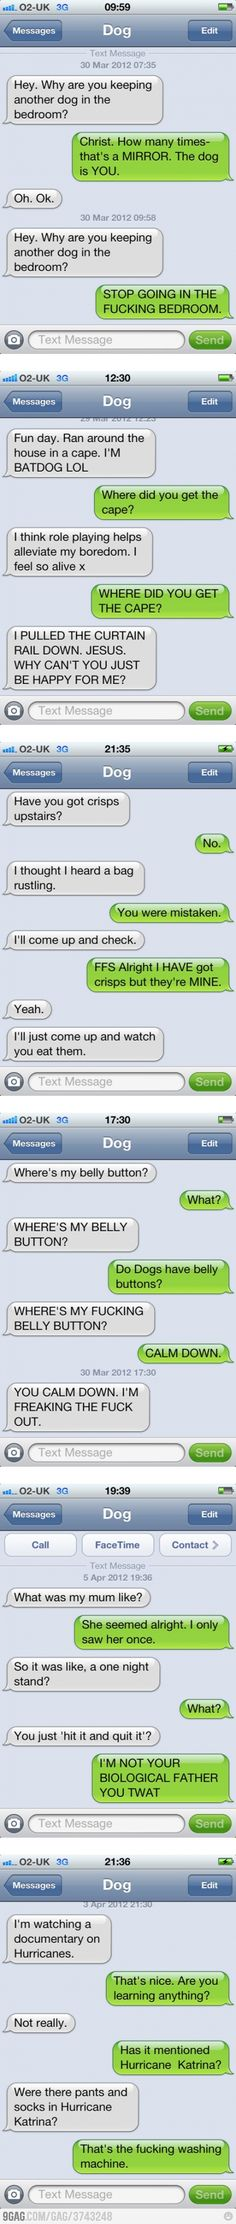 Text messages from my dog.  Hilarious!  Read it!